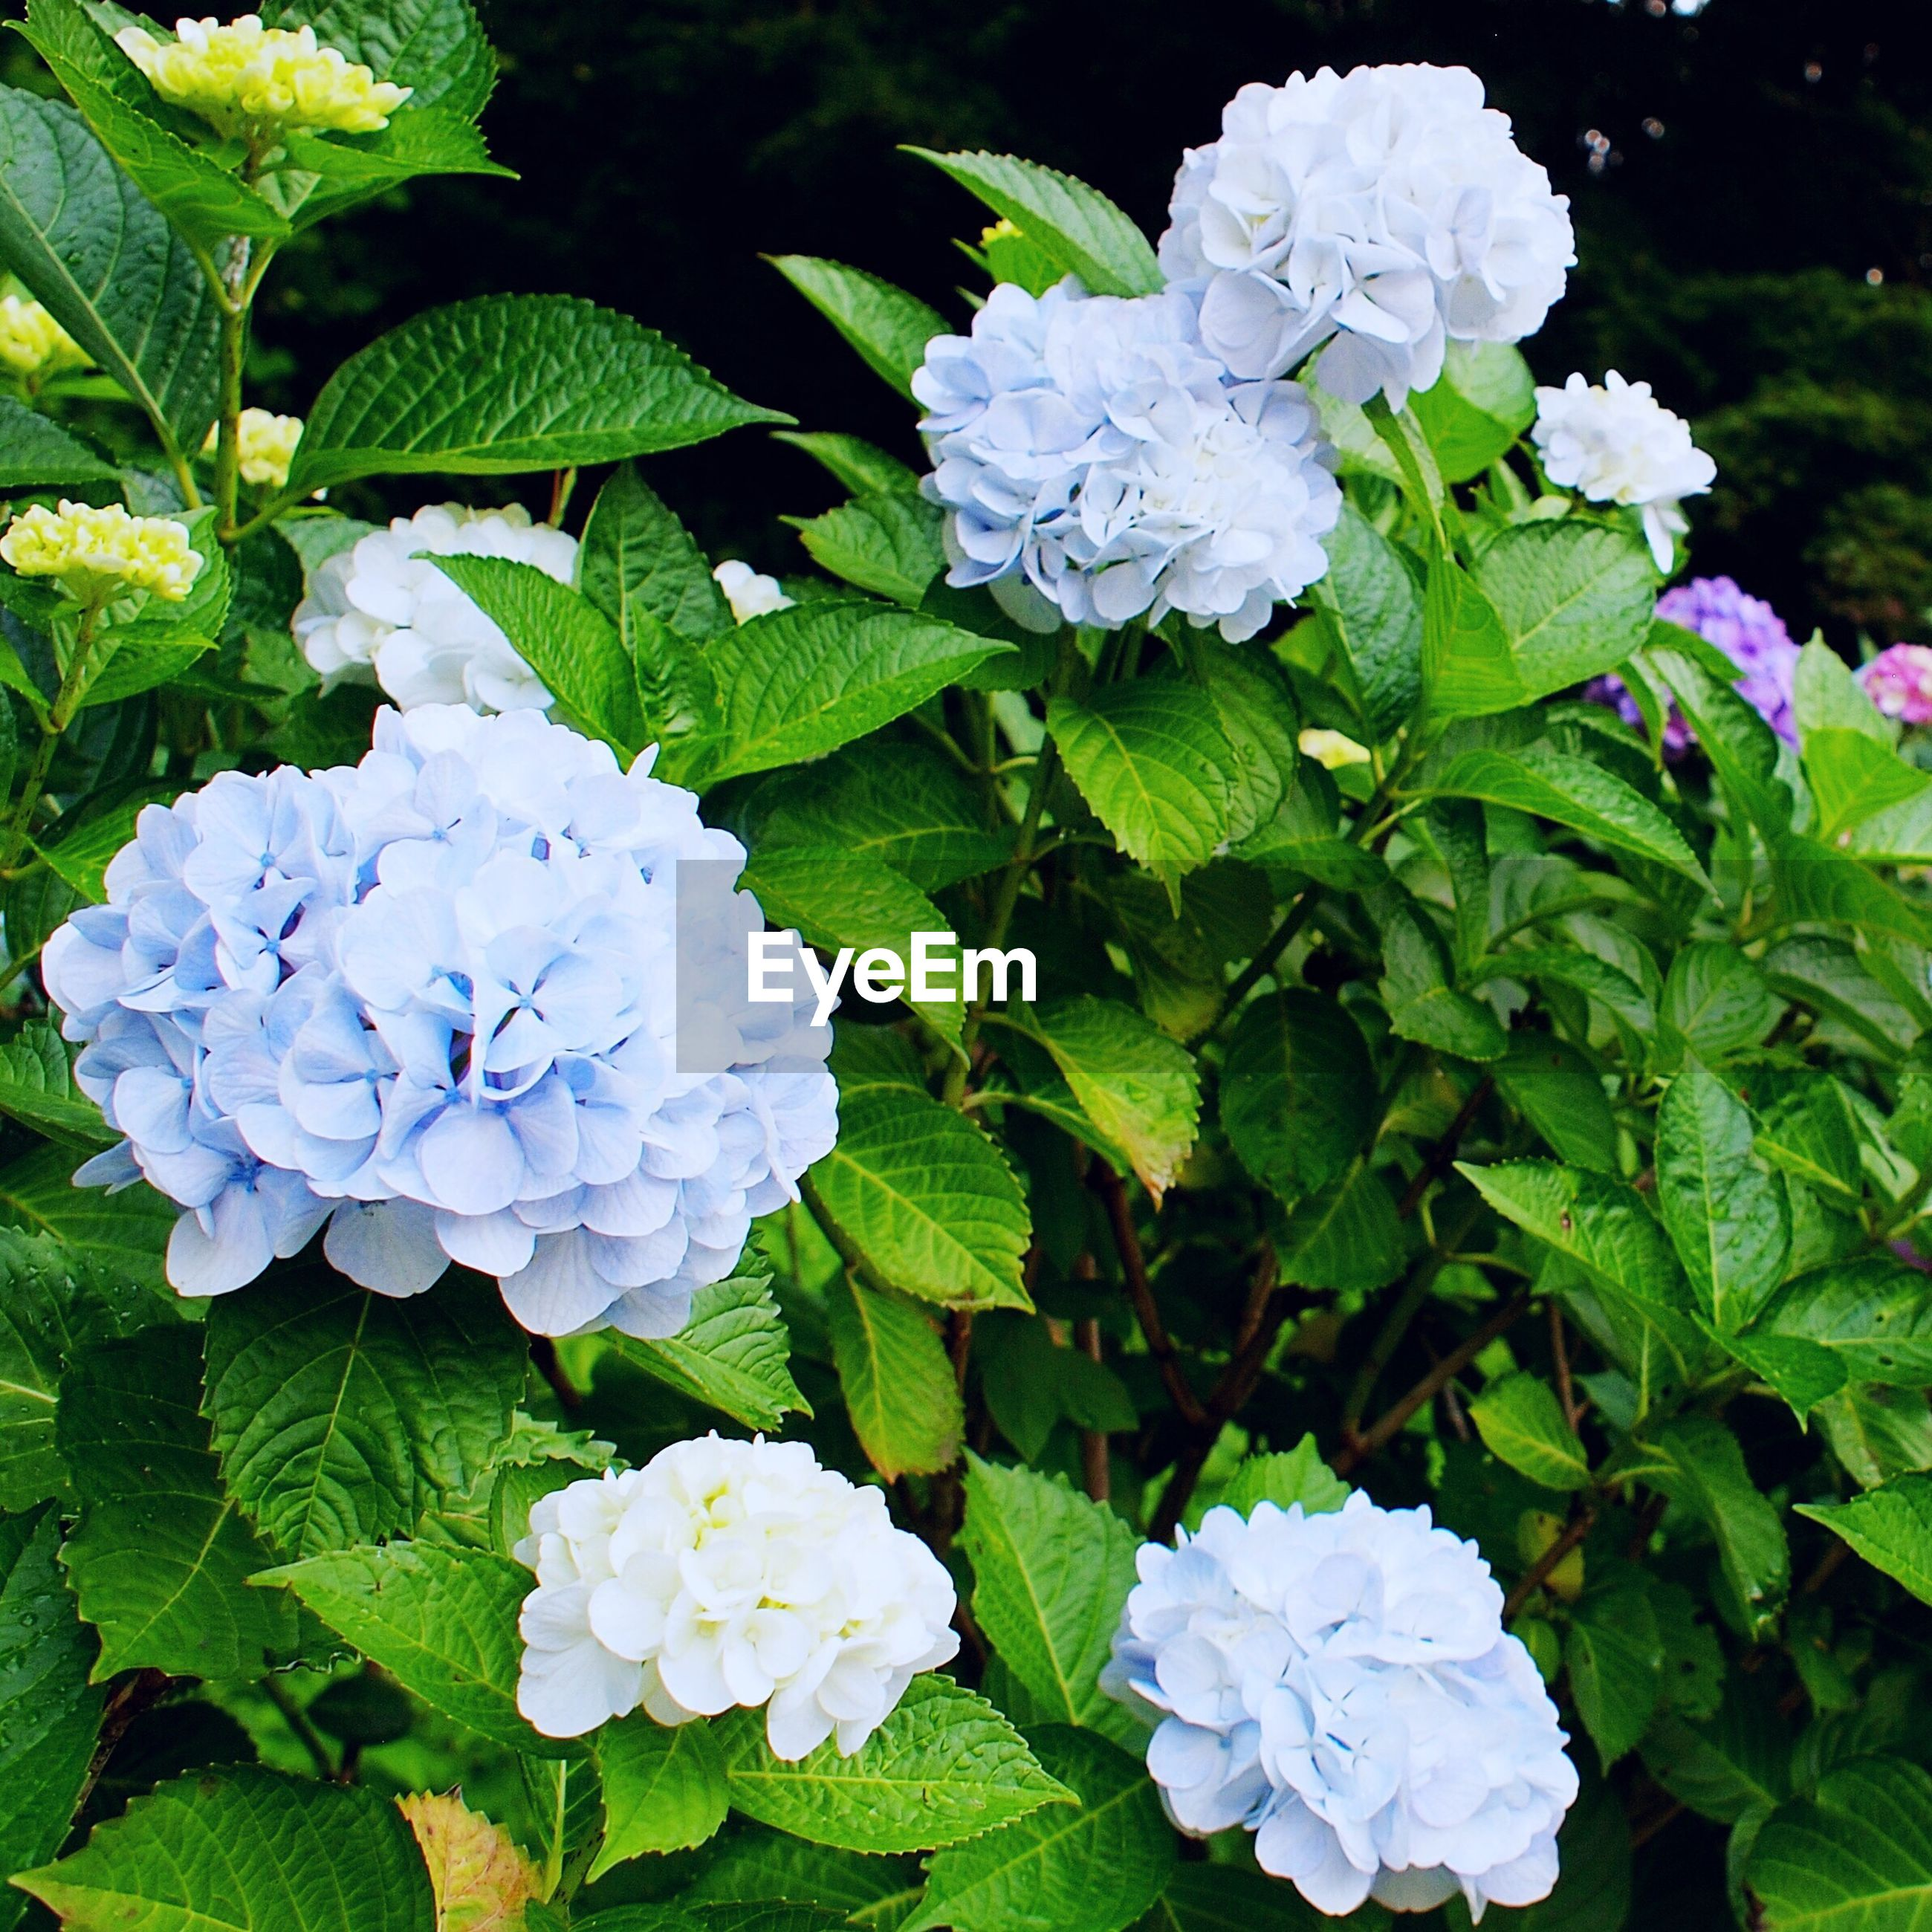 flower, growth, leaf, nature, beauty in nature, hydrangea, green color, plant, petal, freshness, blooming, flower head, no people, outdoors, fragility, day, close-up